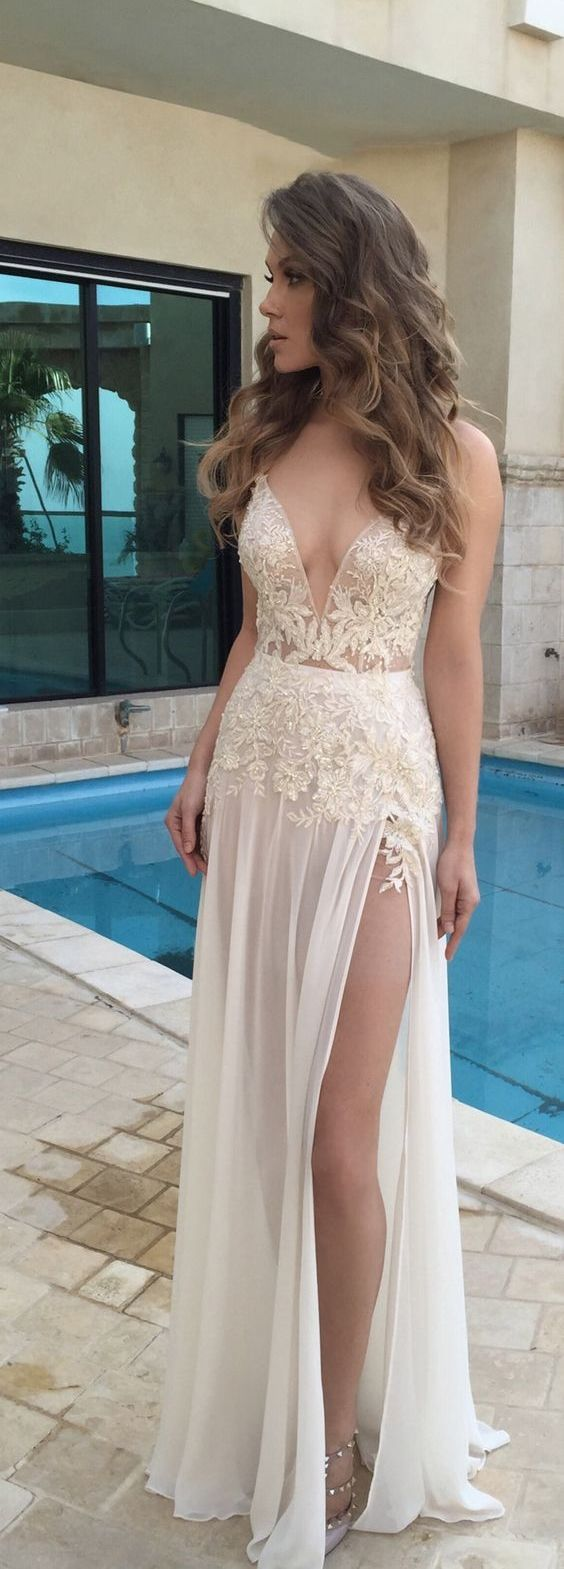 Long prom dresses,Chiffon lace prom dresses, Beach wedding dresses, Sexy Wedding dresses, Beach wedding gown, prom dress online